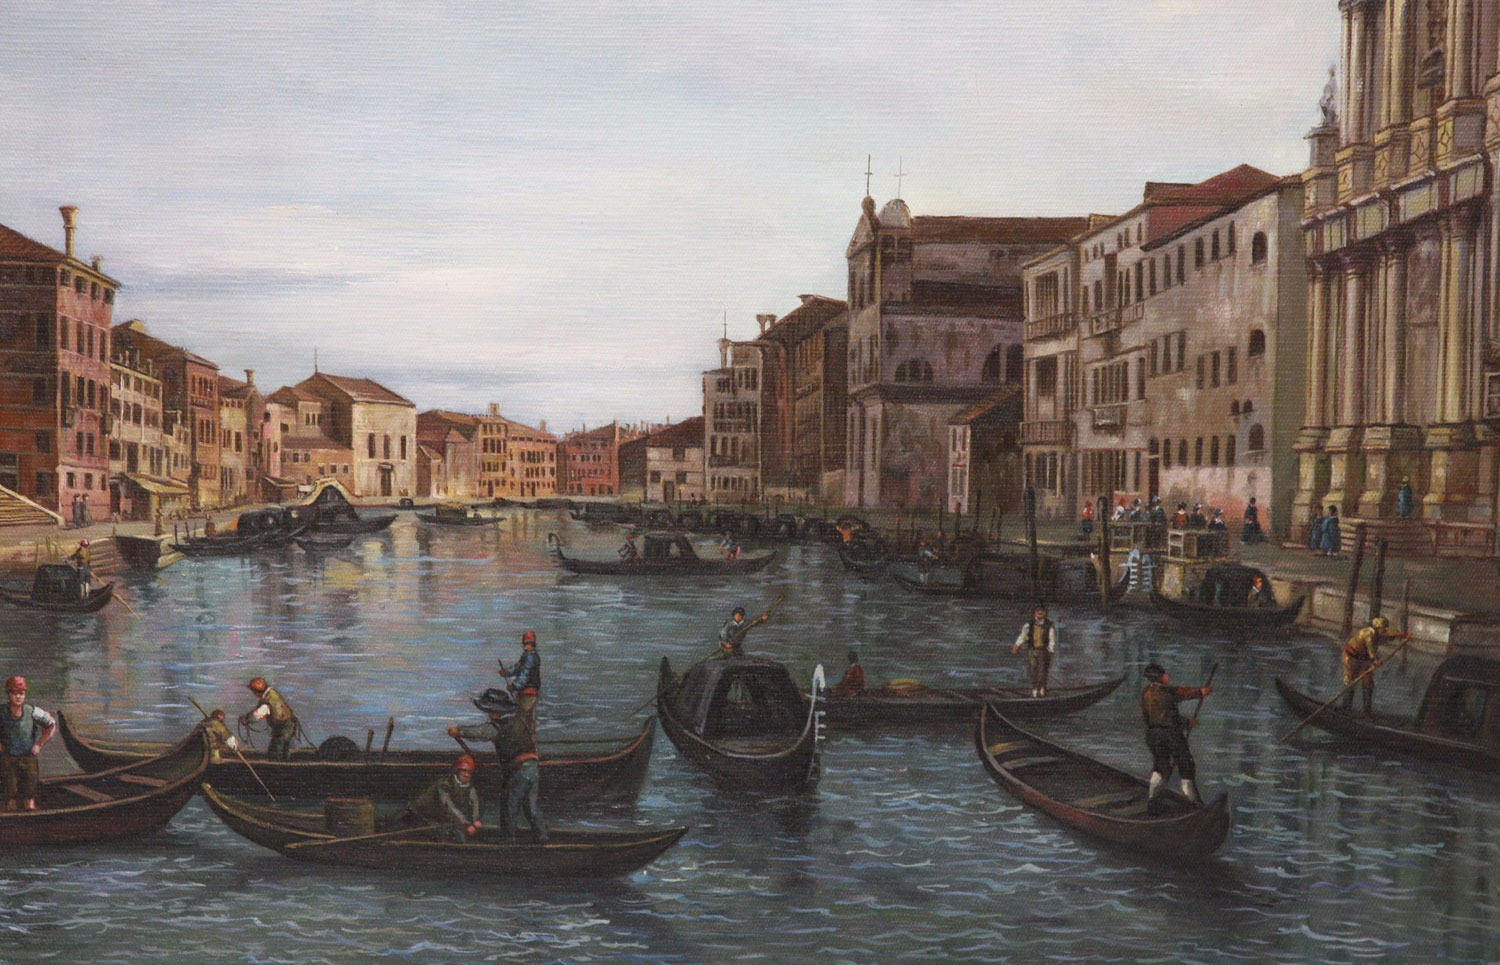 Oil Painting after 'Venice: The Grand Canal with S. Simeone Piccolo' by Canaletto